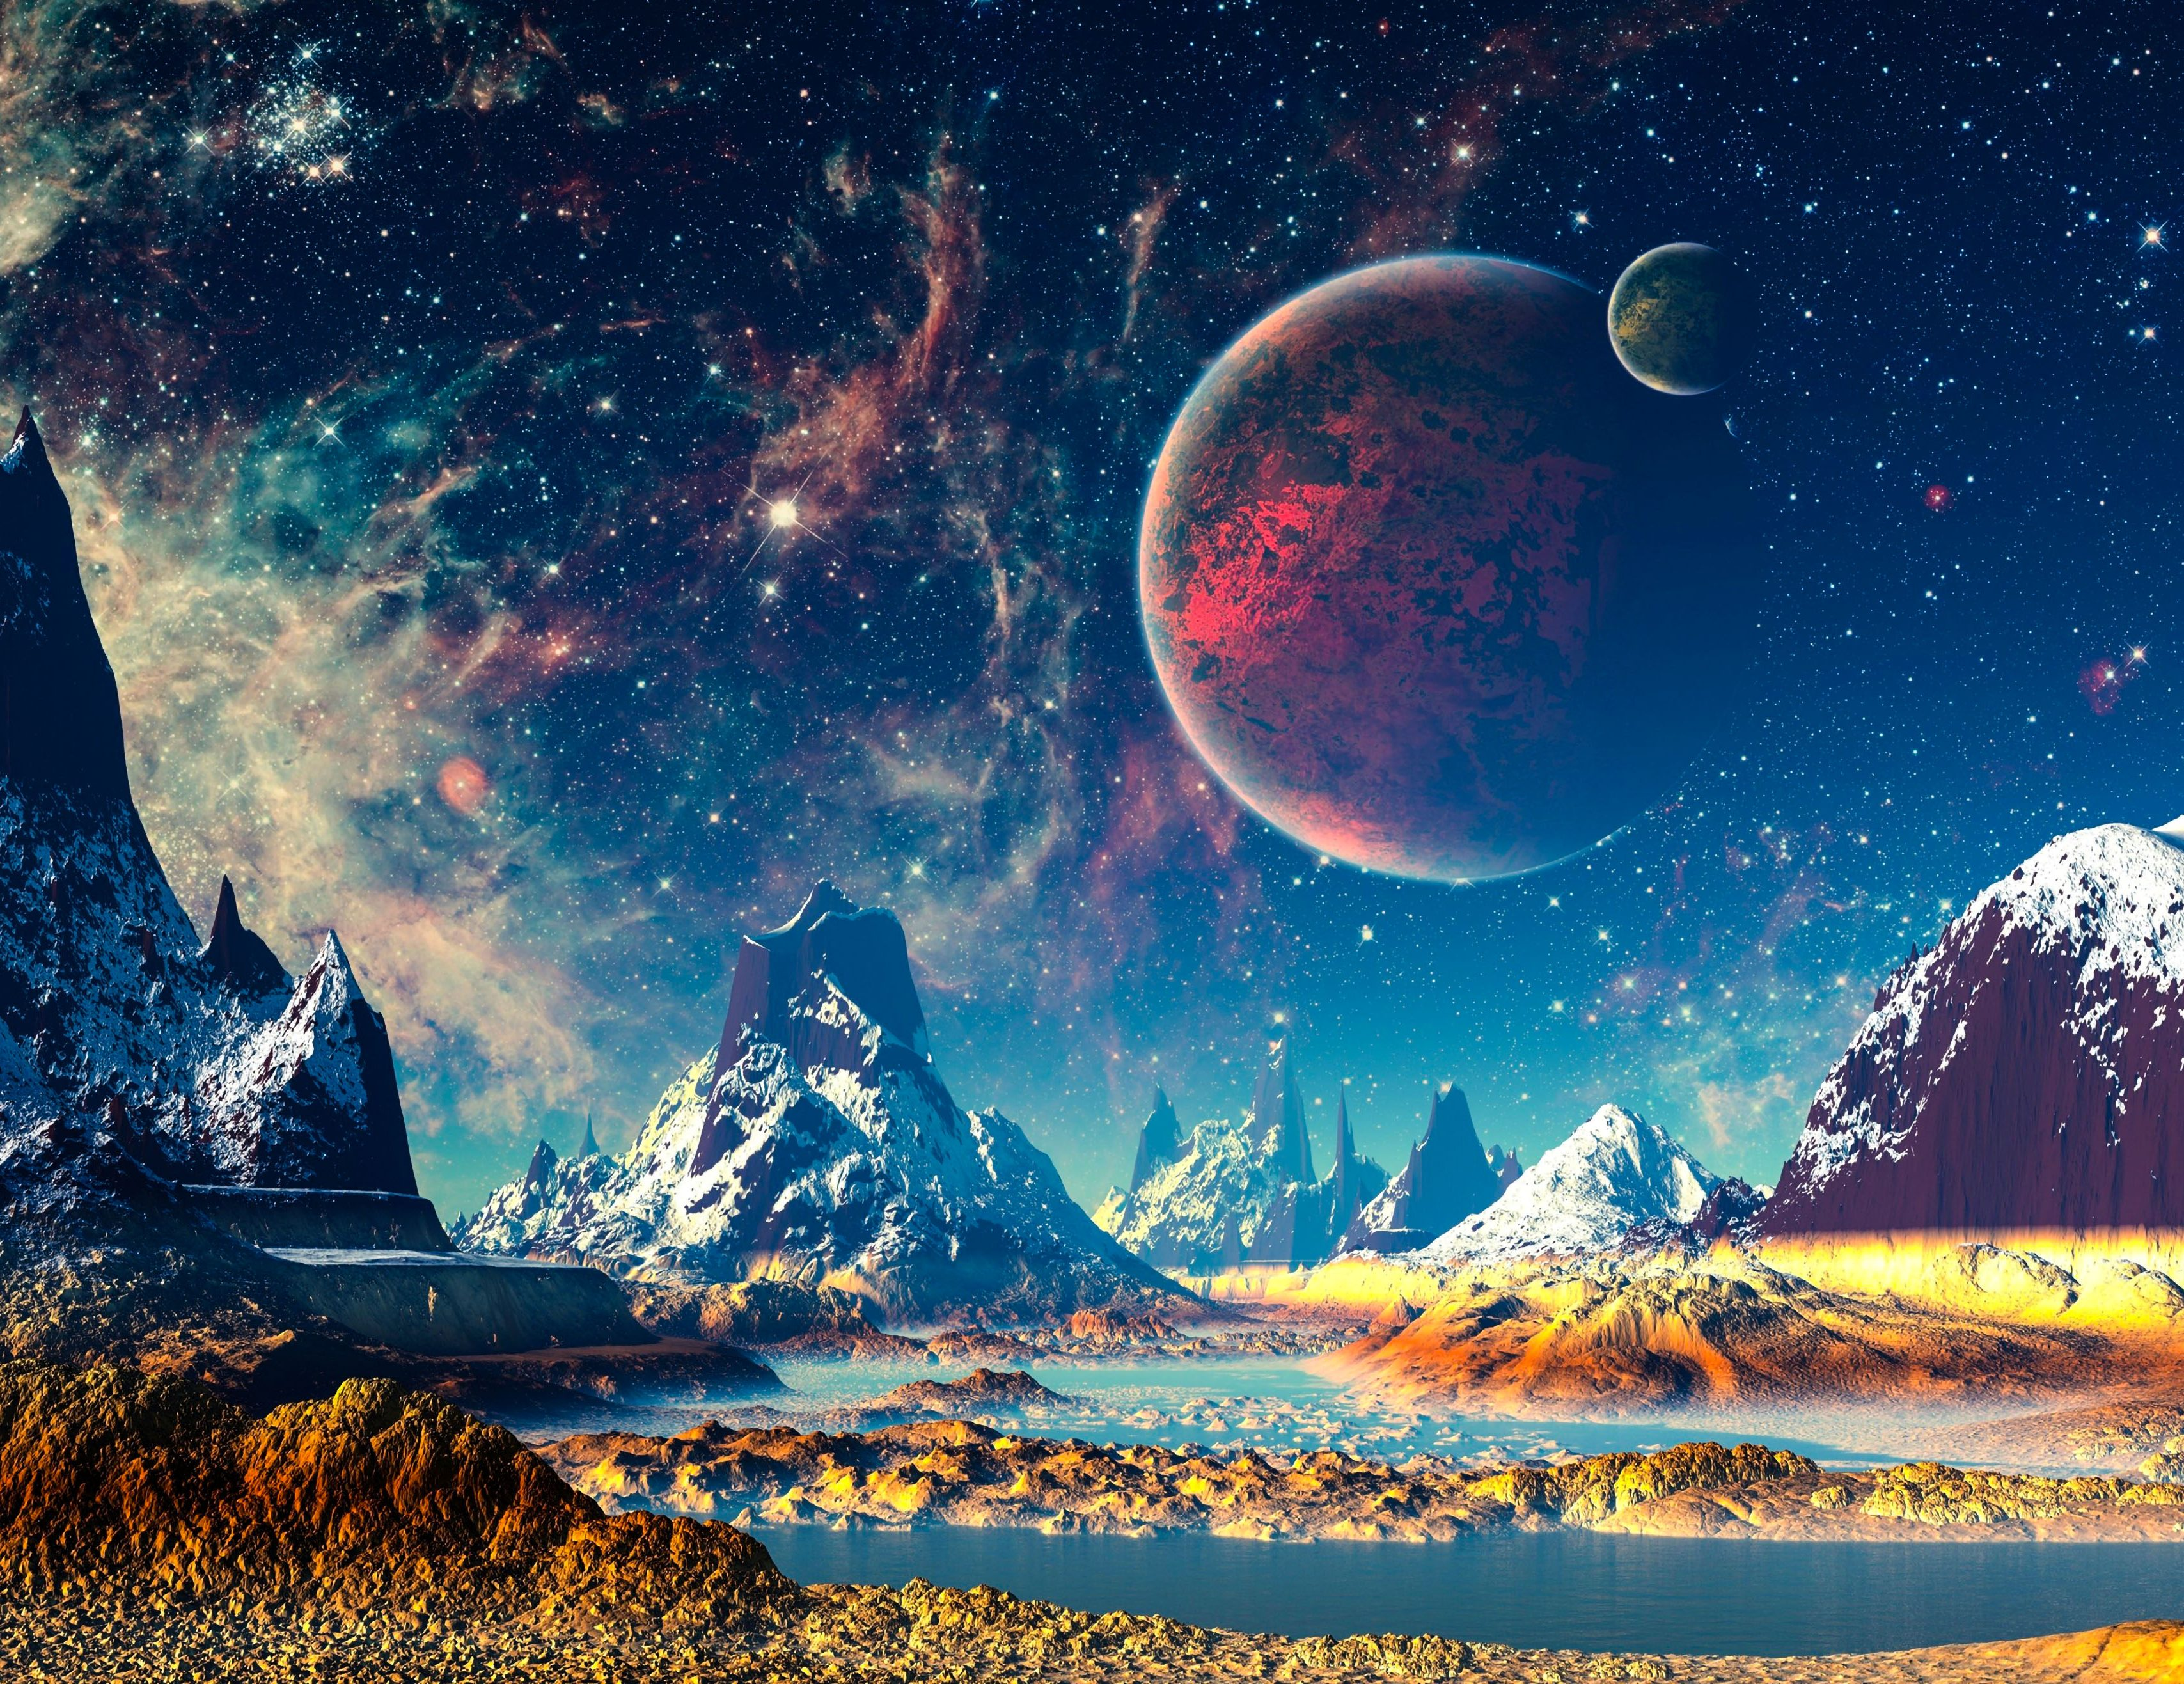 Fantasy World Mountains River Planets Stars 4k Wallpaper Best Wallpapers